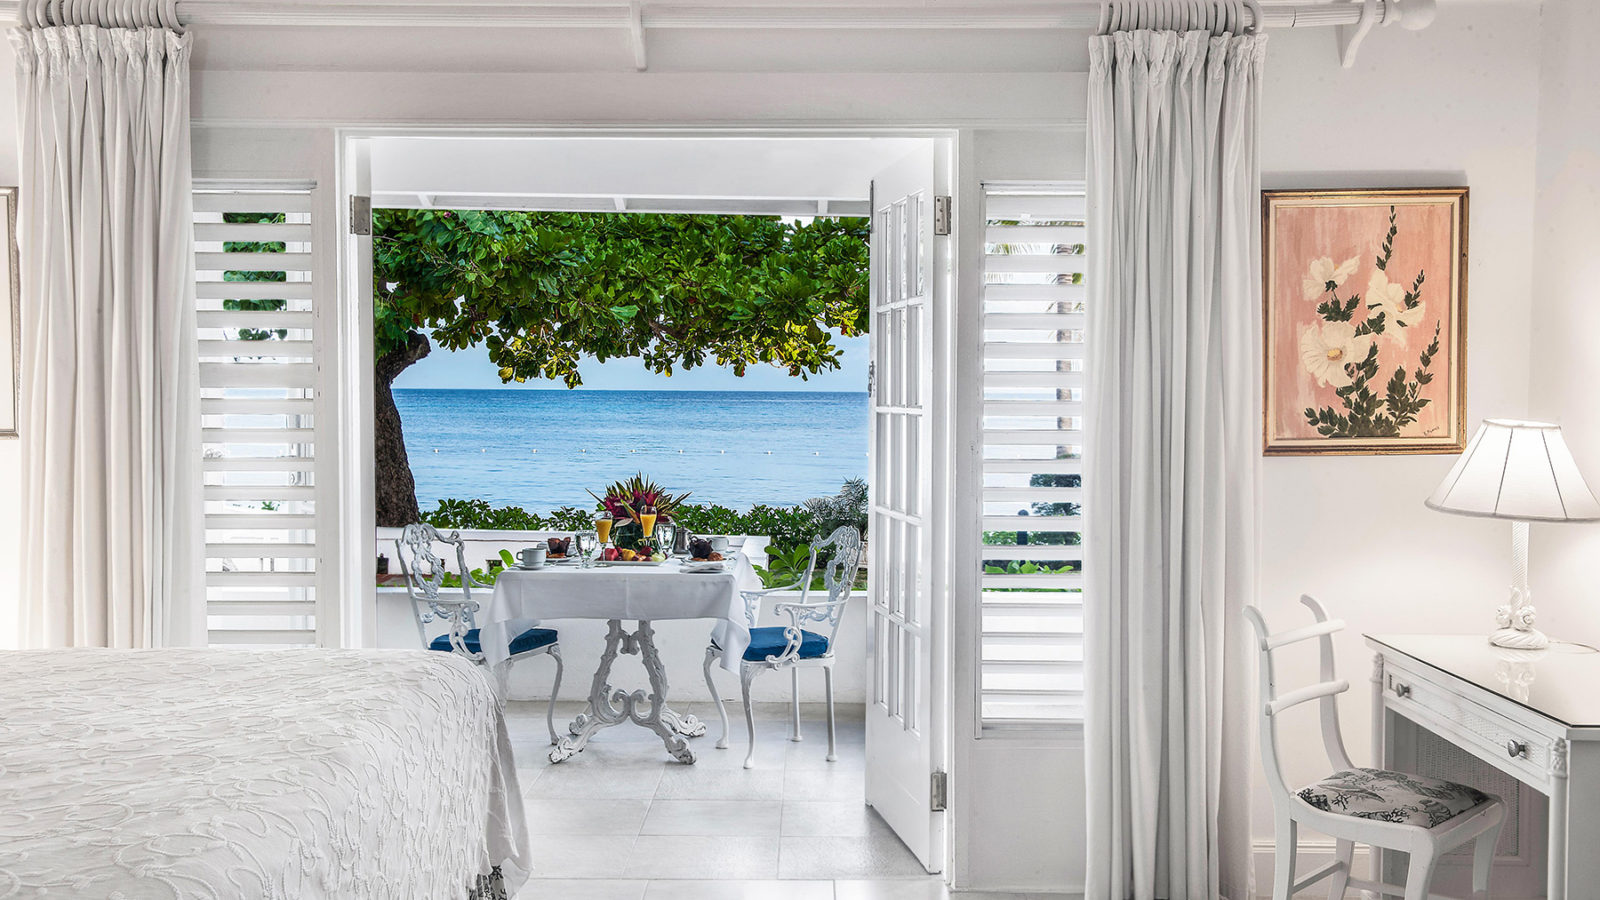 Half Moon Jamaica-room view out to sea